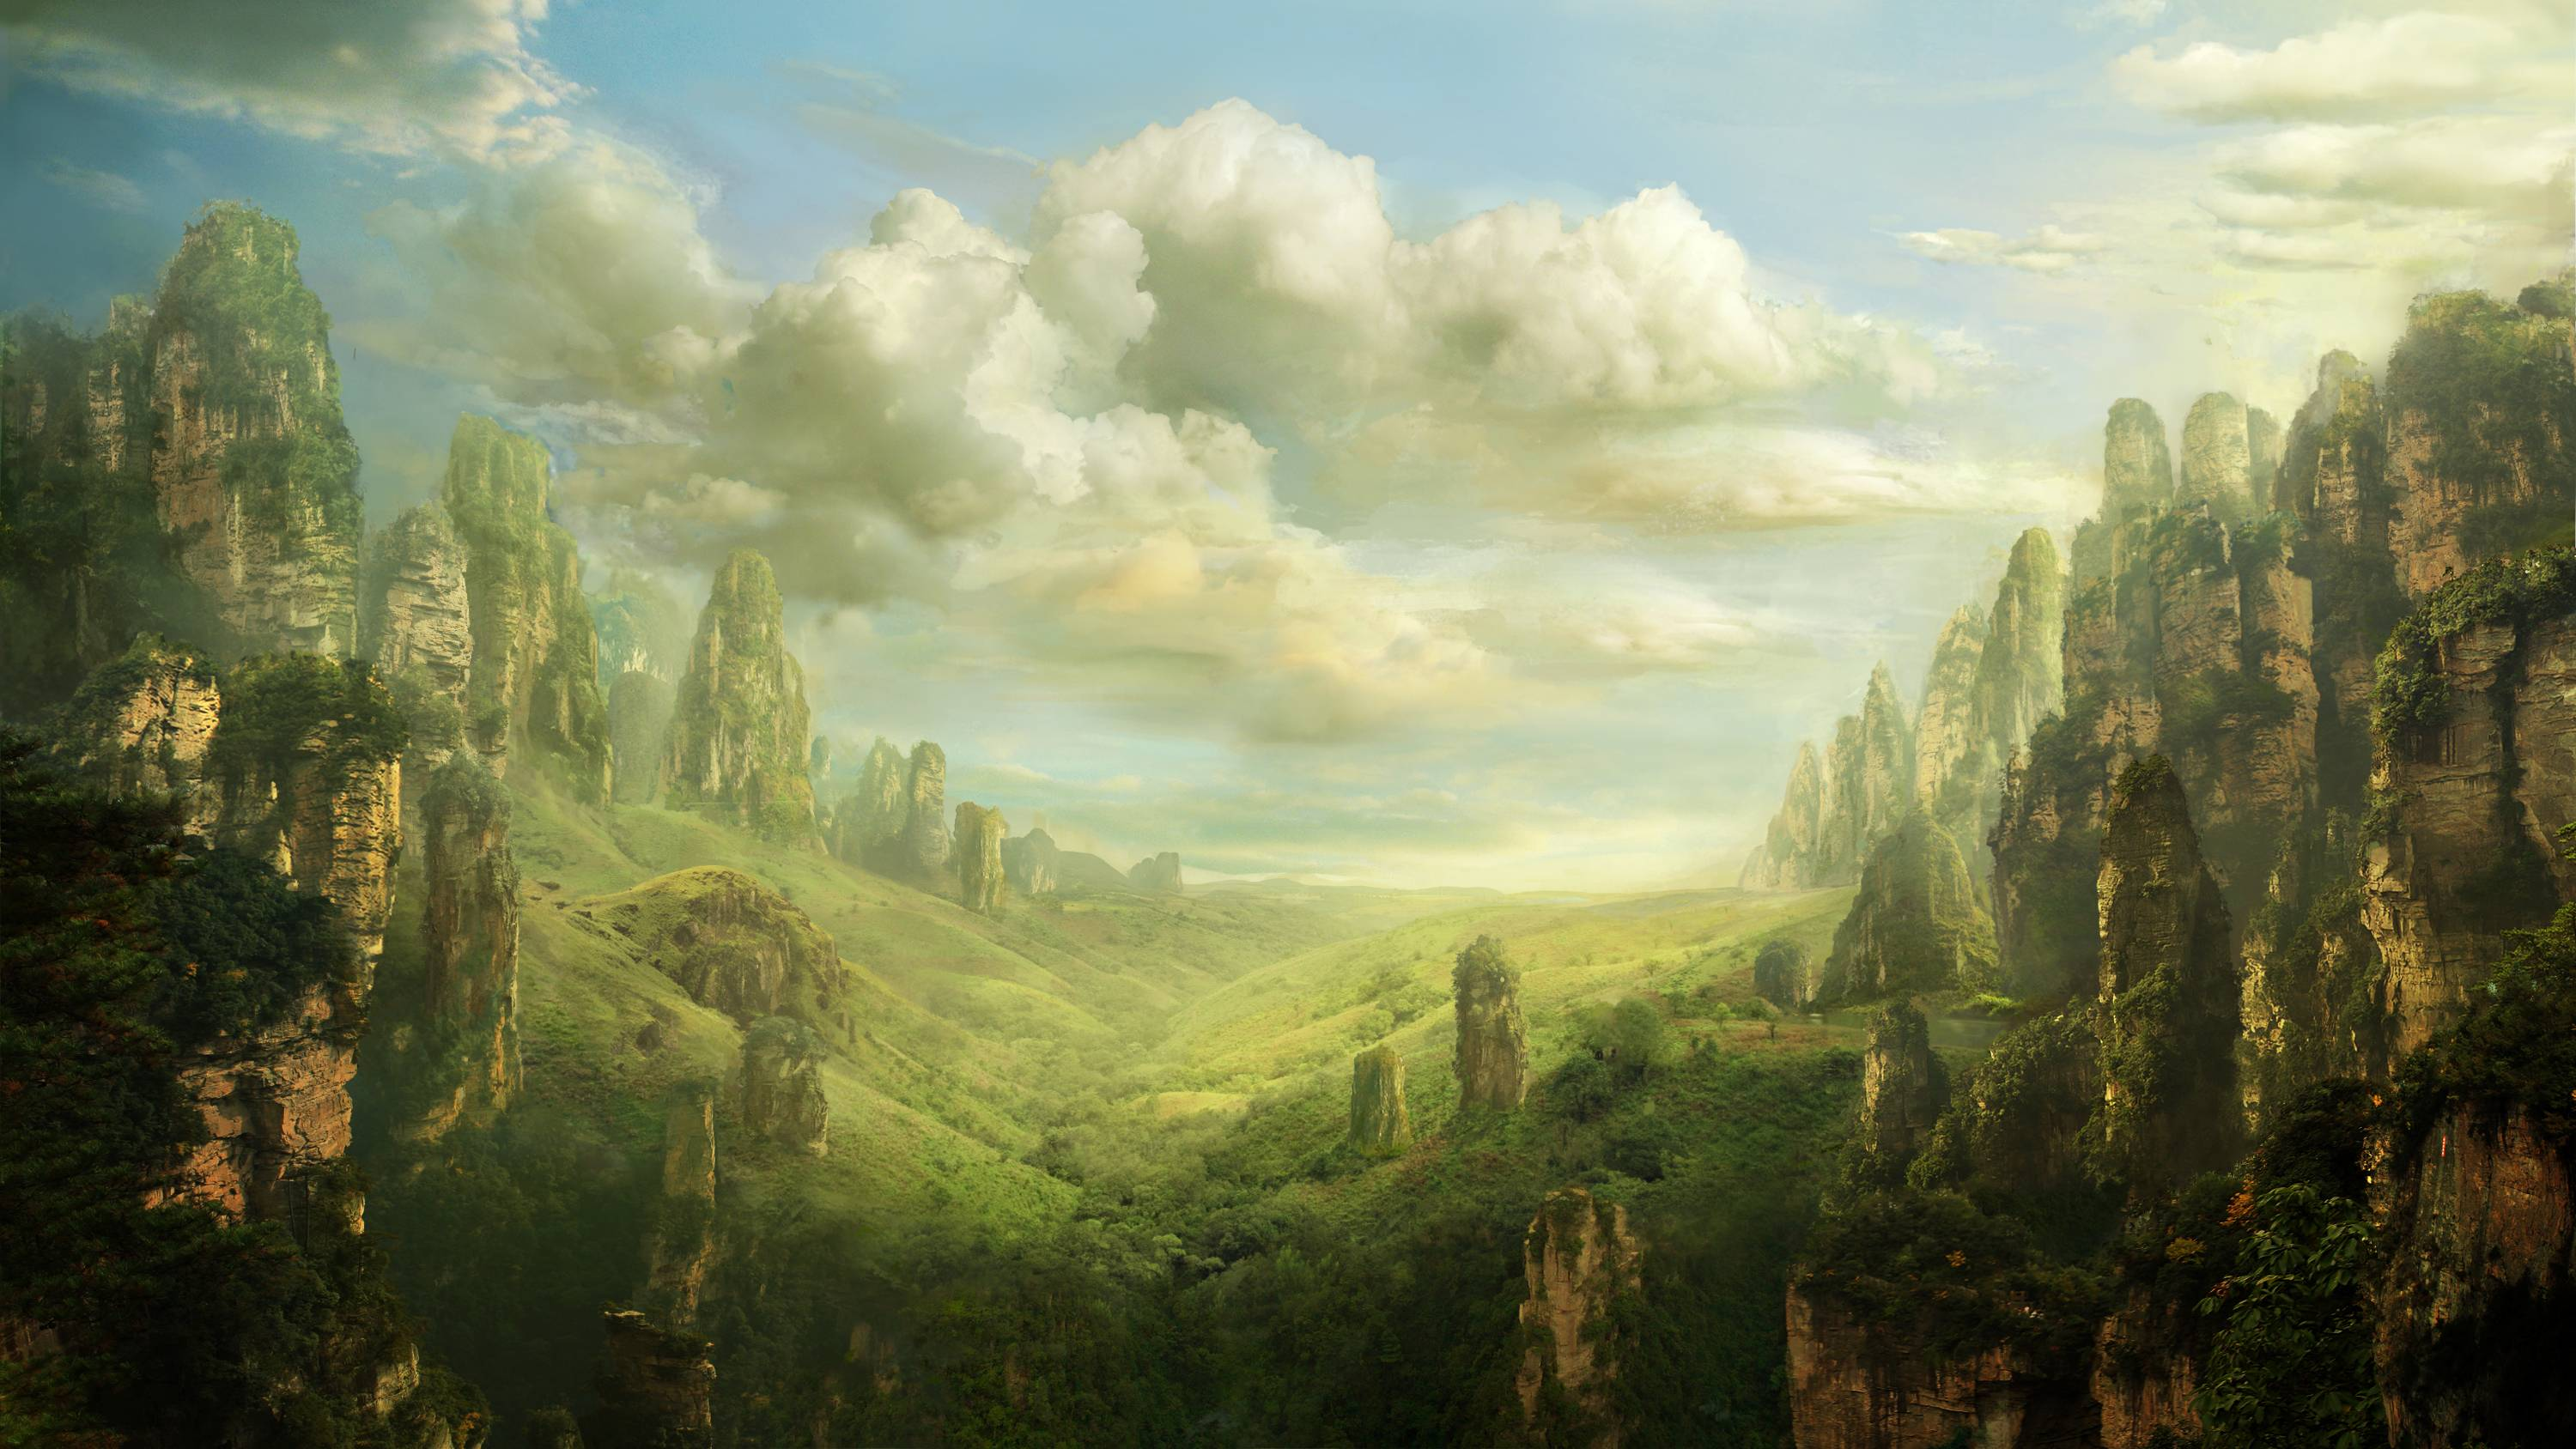 Fantasy landscape wallpapers wallpaper cave - Digital art wallpaper 3840x1080 ...